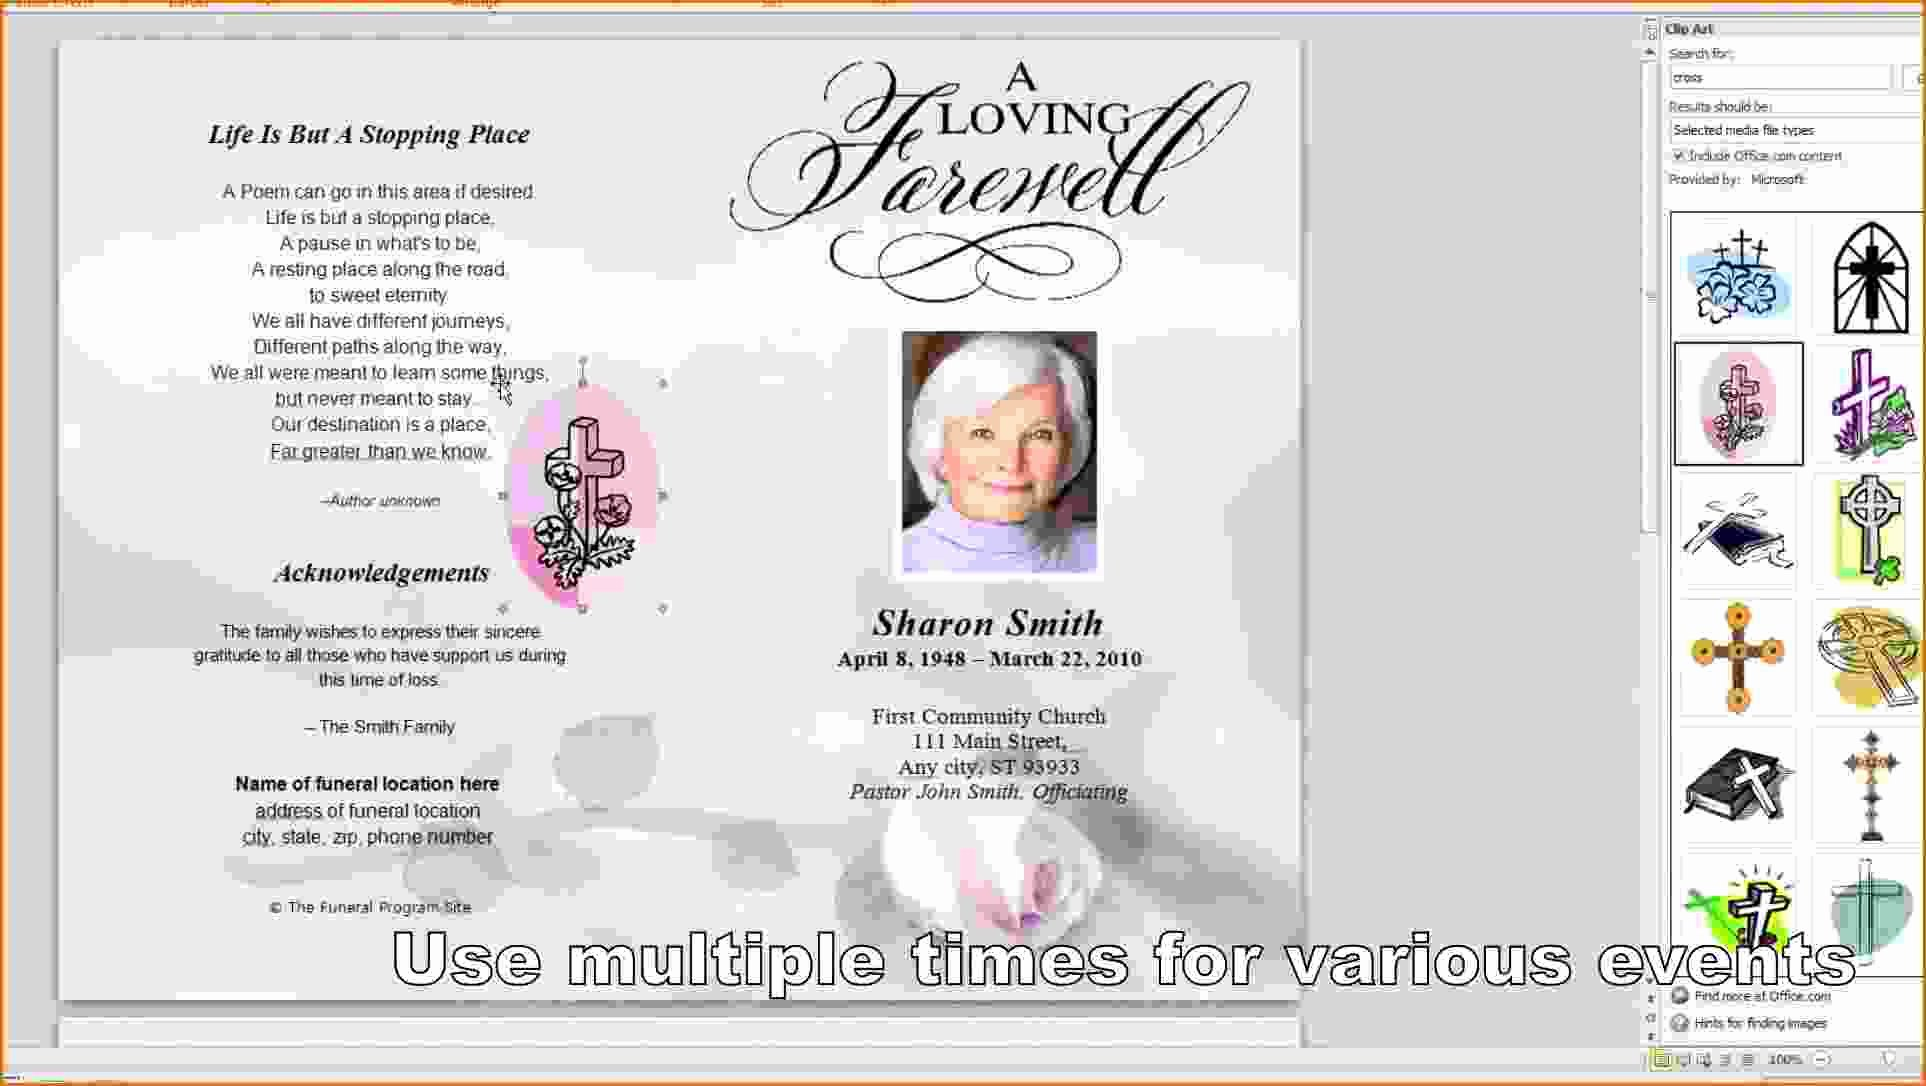 Funeral Program Template Microsoft Word Fresh 8 Free Funeral Program Template Microsoft Word